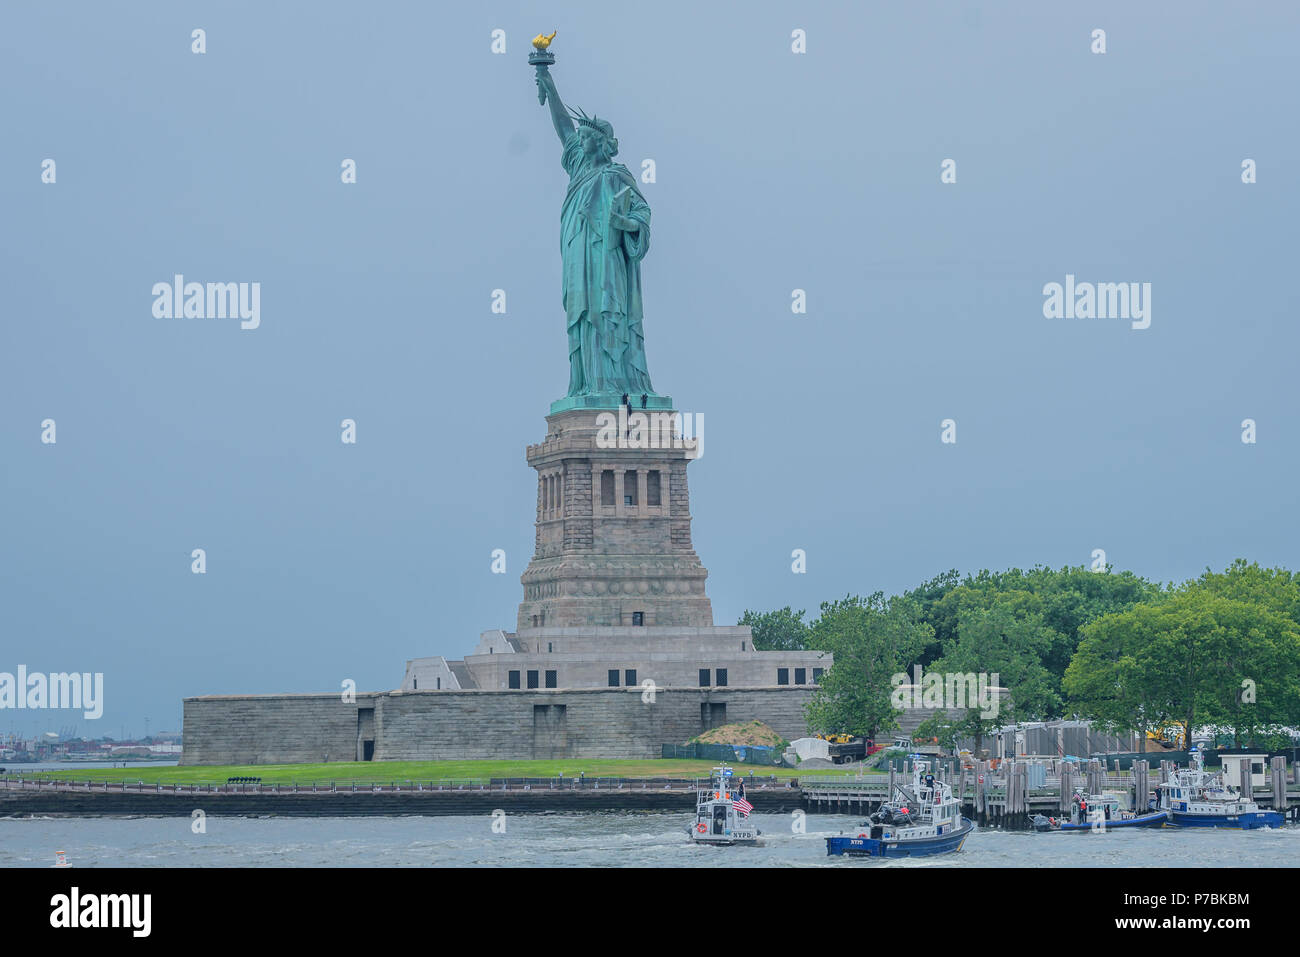 "New York, United States. 04th July, 2018. Liberty Island was evacuated because of a person climbing the Statue of Liberty's base on the Fourth of July shortly after seven protesters who unfurled an ""Abolish ICE"" banner from the statue's pedestal calling for abolishing Immigration and Customs Enforcement were arrested. Credit: Erik McGregor/Pacific Press/Alamy Live News Stock Photo"